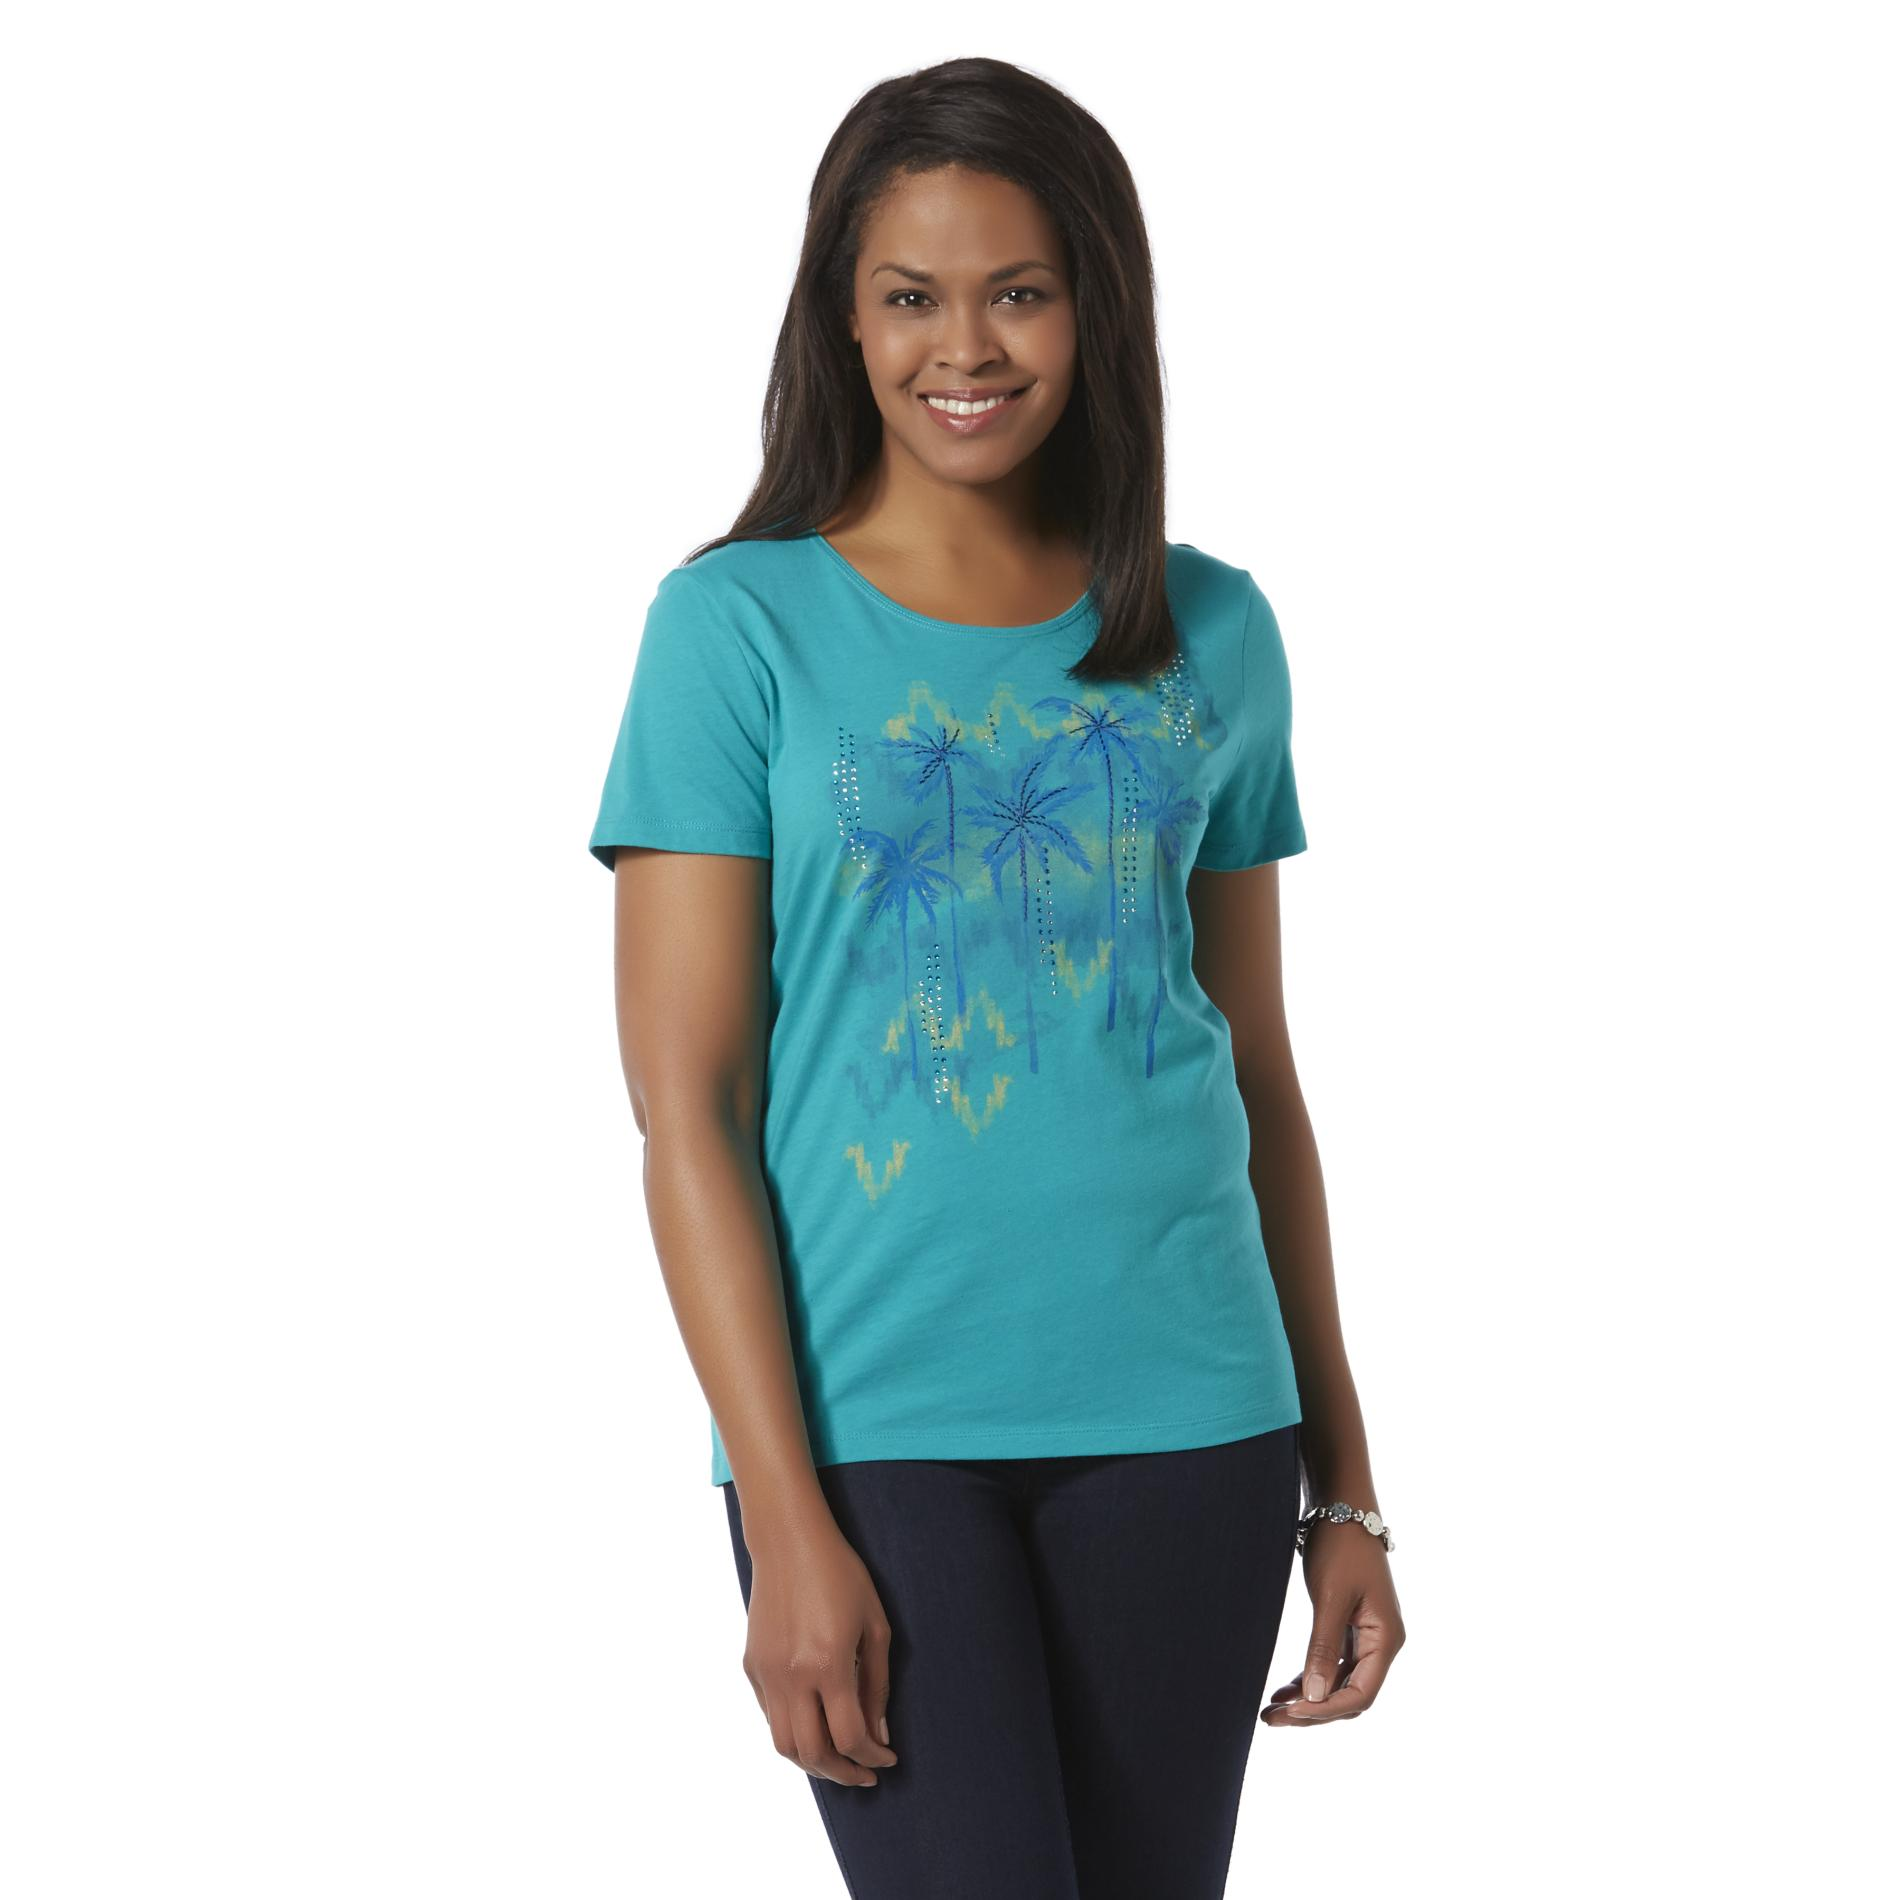 Laura Scott Women's Embellished T-Shirt - Palm Trees